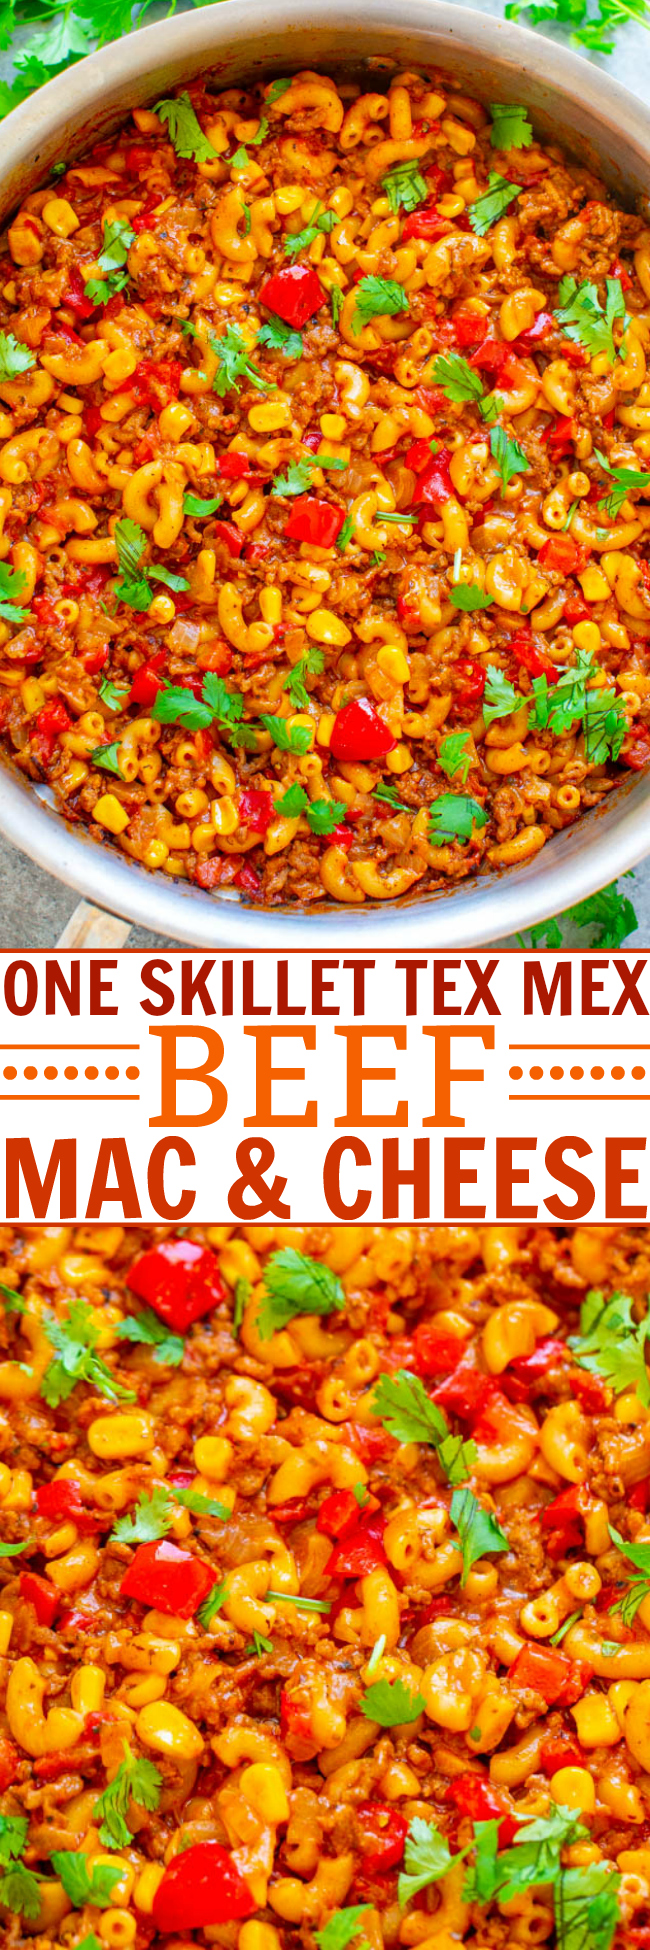 One-Skillet Tex Mex Beef Mac & Cheese - An EASY recipe that's made in ONE skillet so you don't have to cook the pasta separately!! Loaded with ground beef, peppers, tomatoes, cheese, and cilantro! A family FAVORITE that feeds a crowd!!